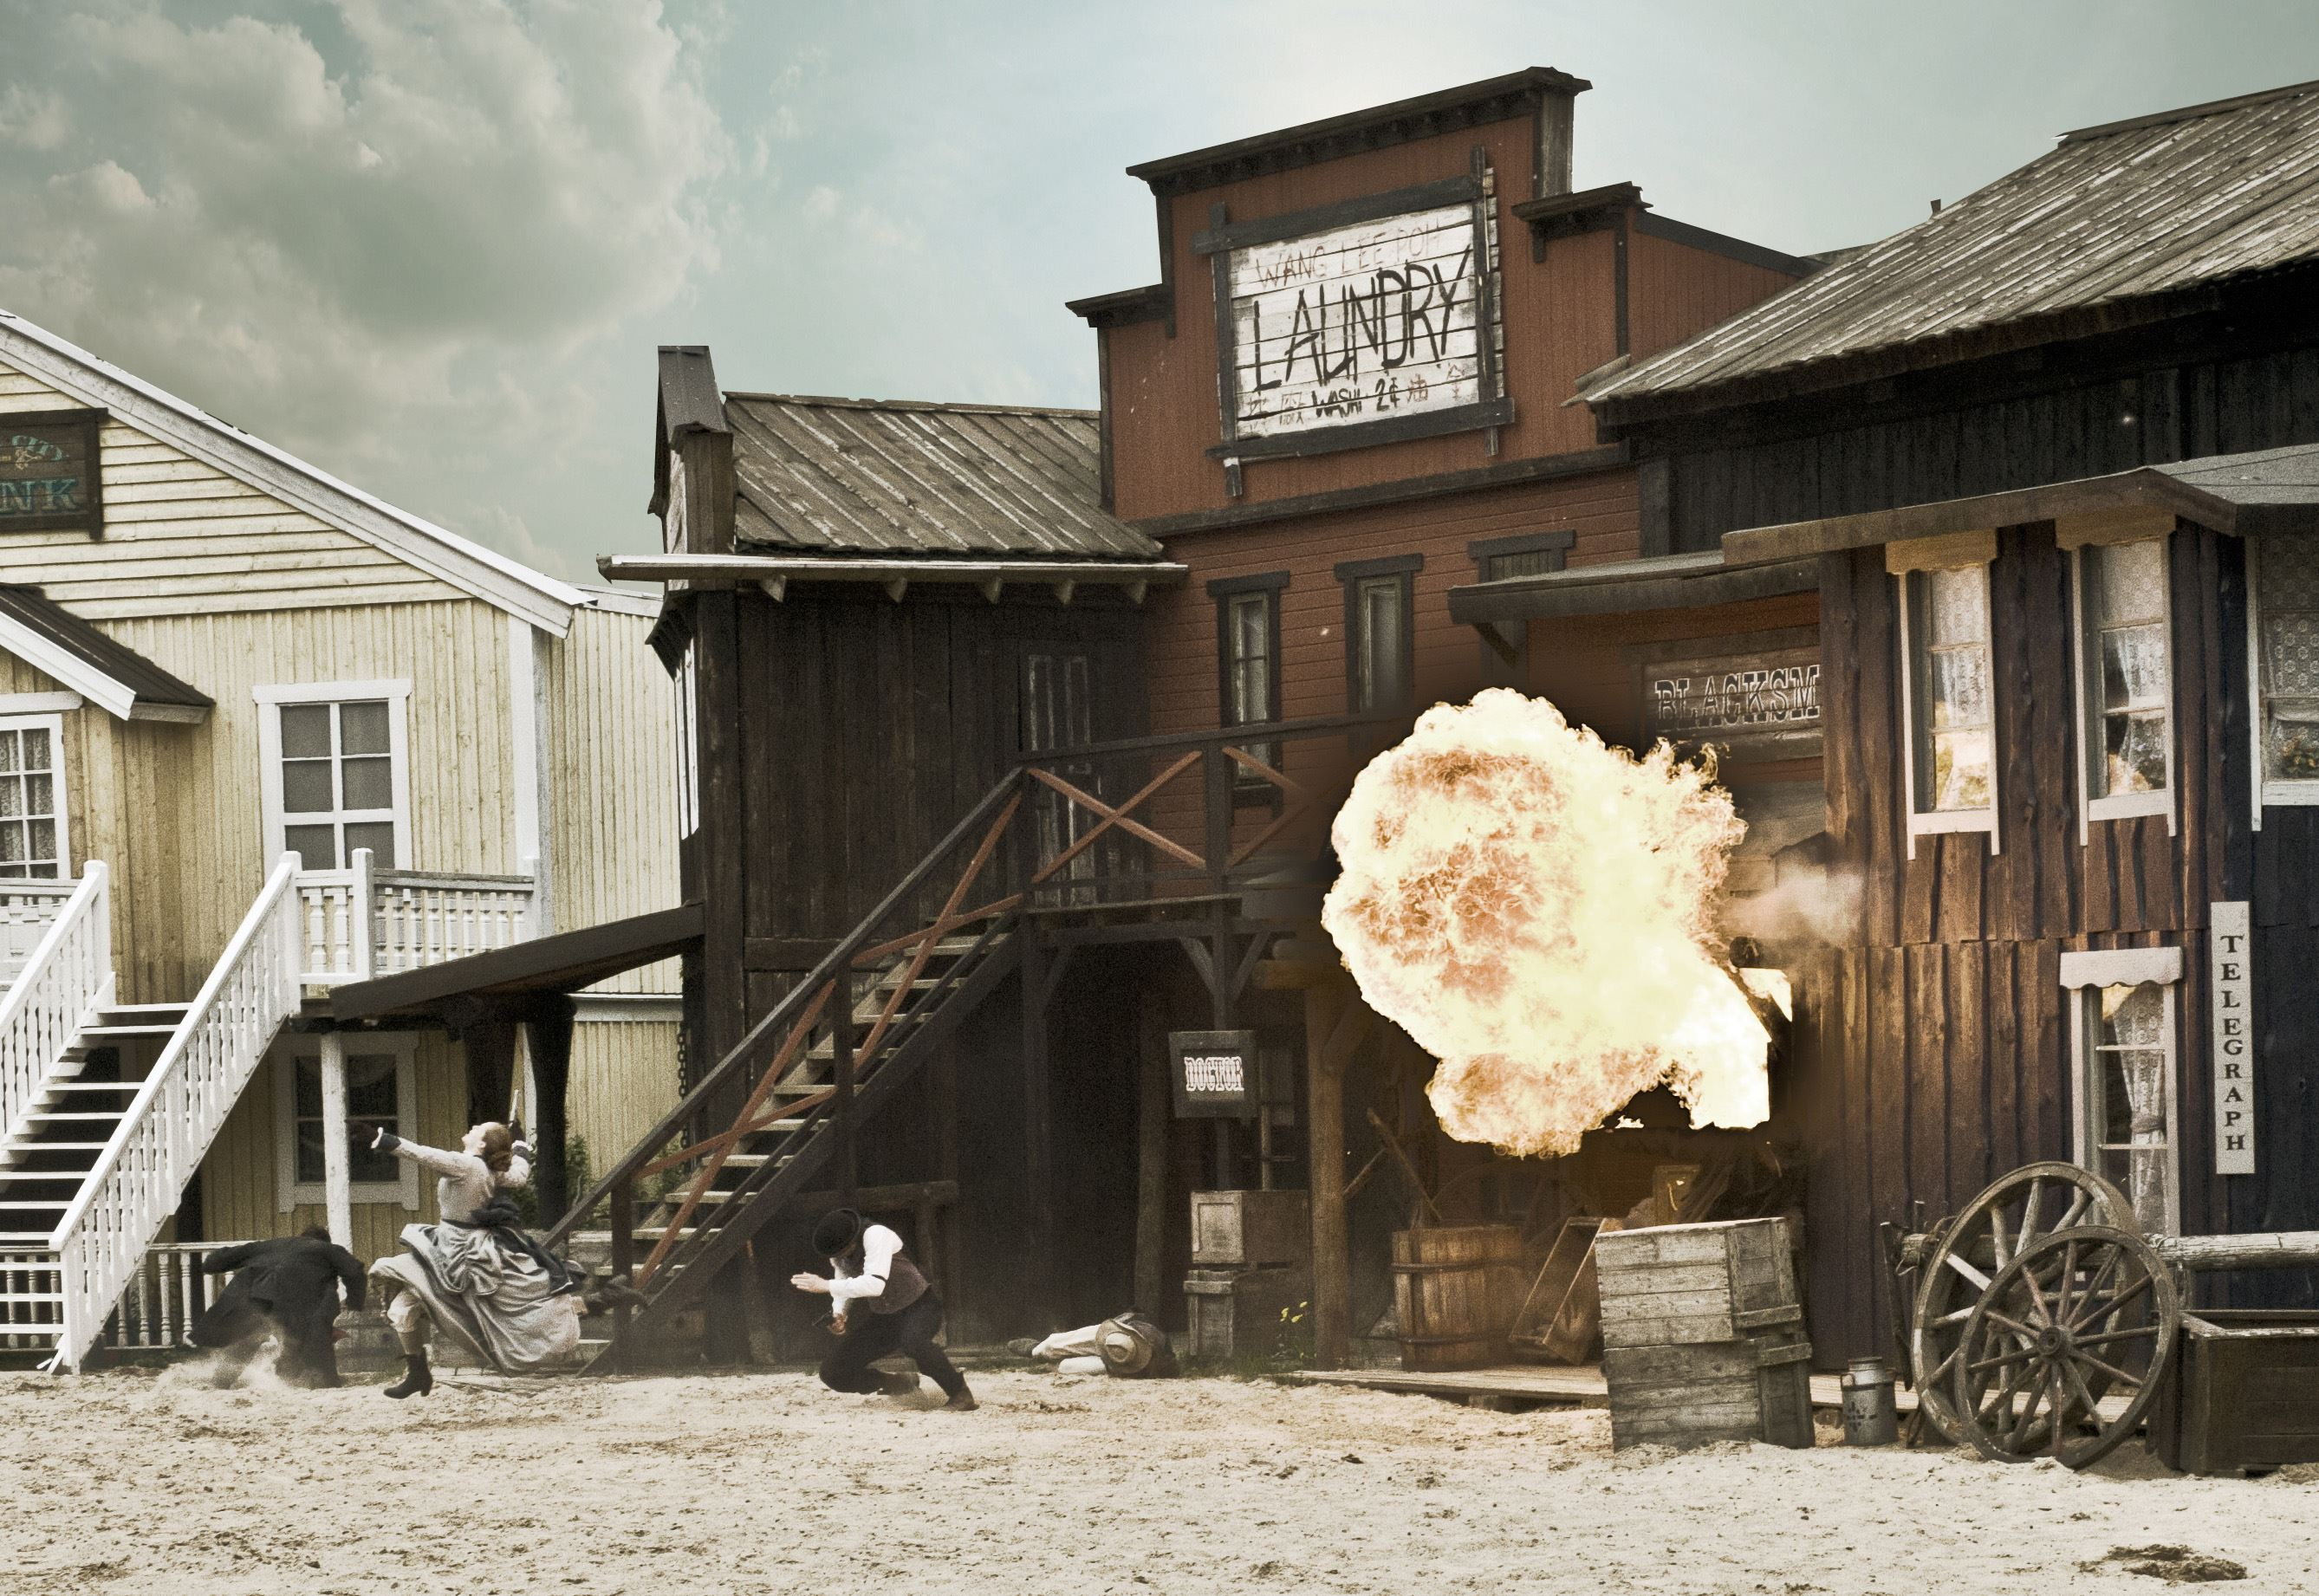 High Chaparral - Welcome to the Wild West